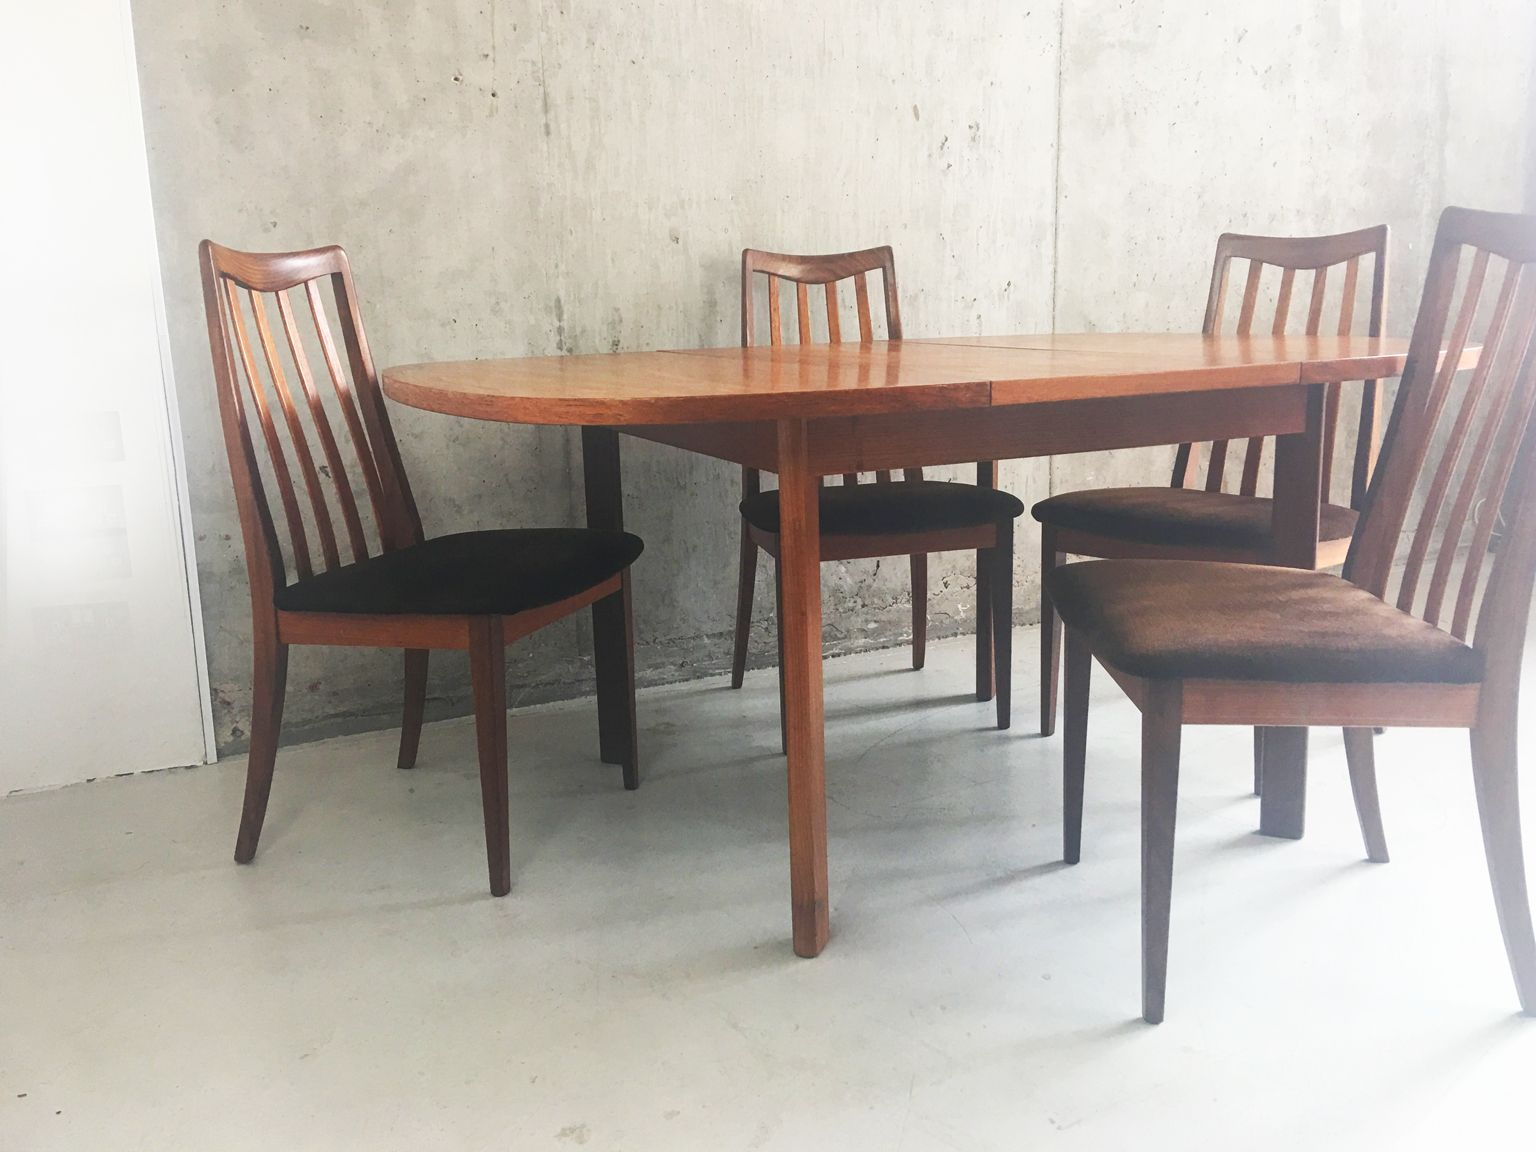 Mid Century Extendable Table And 4 Dining Chairs From G Plan 1970s For Sale